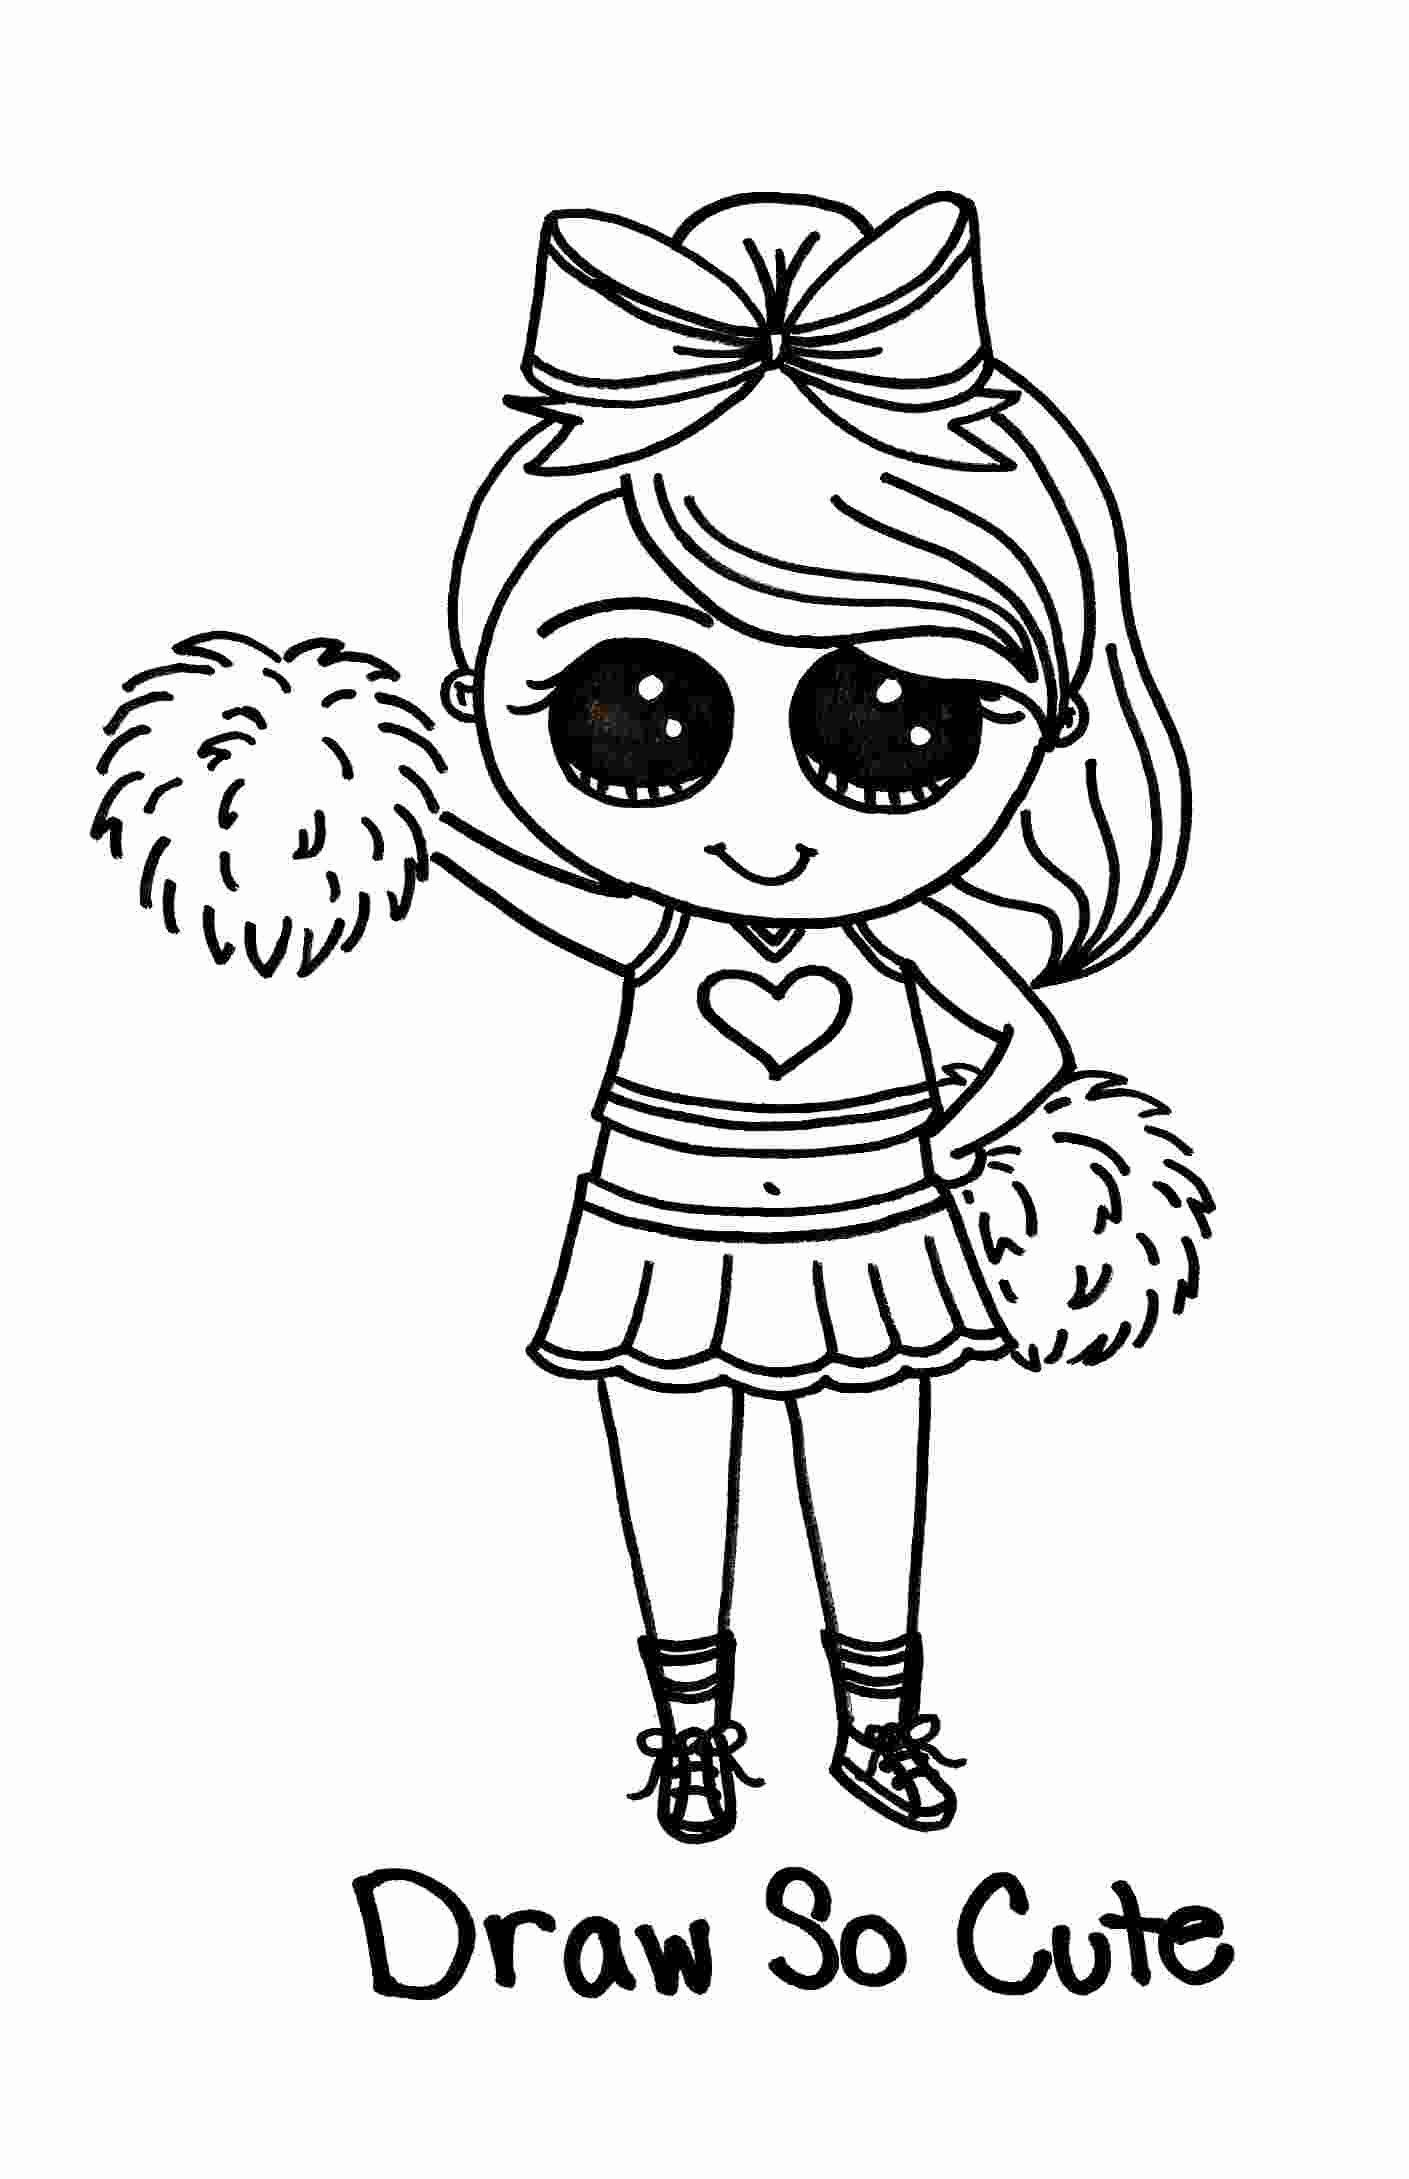 Cute Starbucks Coloring Pages Elegant Starbucks Coloring Pages New Draw So Cute Coloring Pages Cute Coloring Pages Easy Coloring Pages Shopkins Colouring Pages